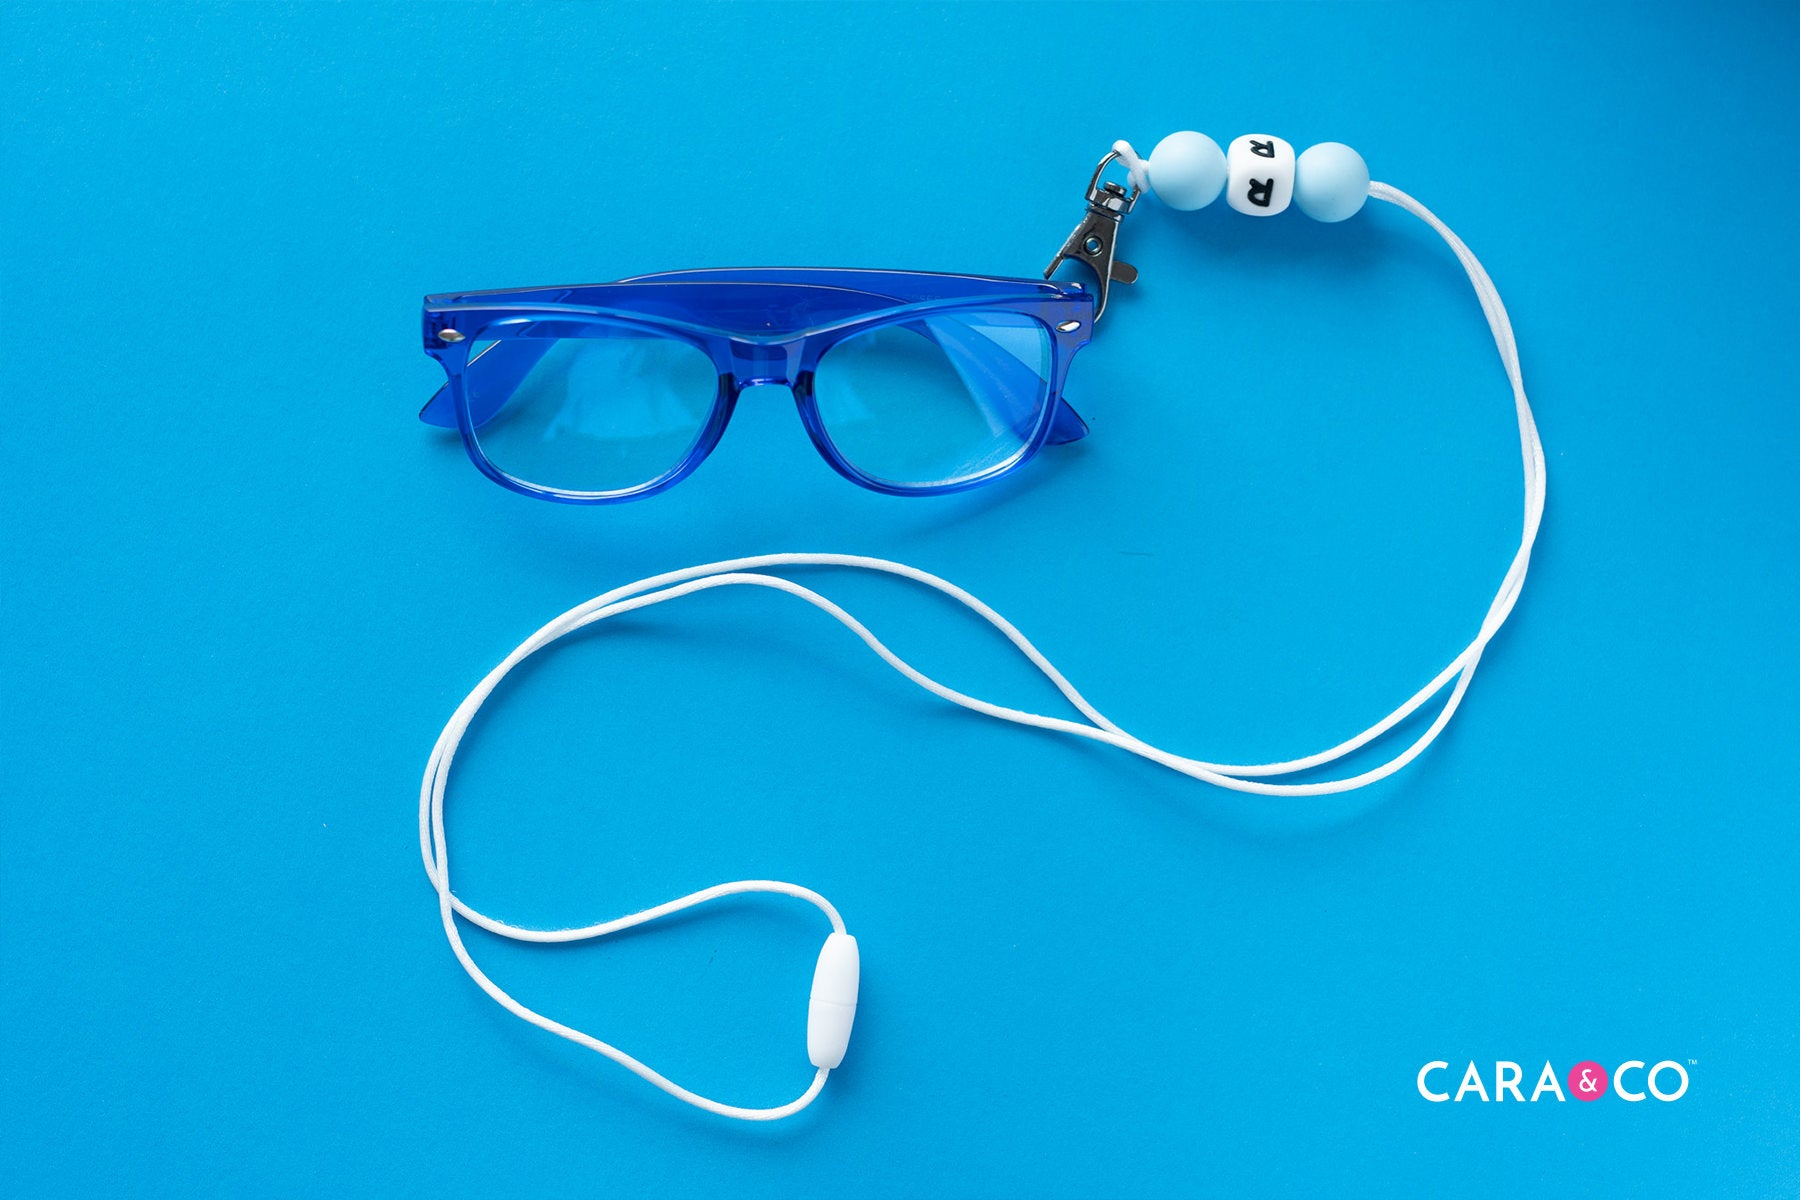 Back to school in style - Lanyard for glasses